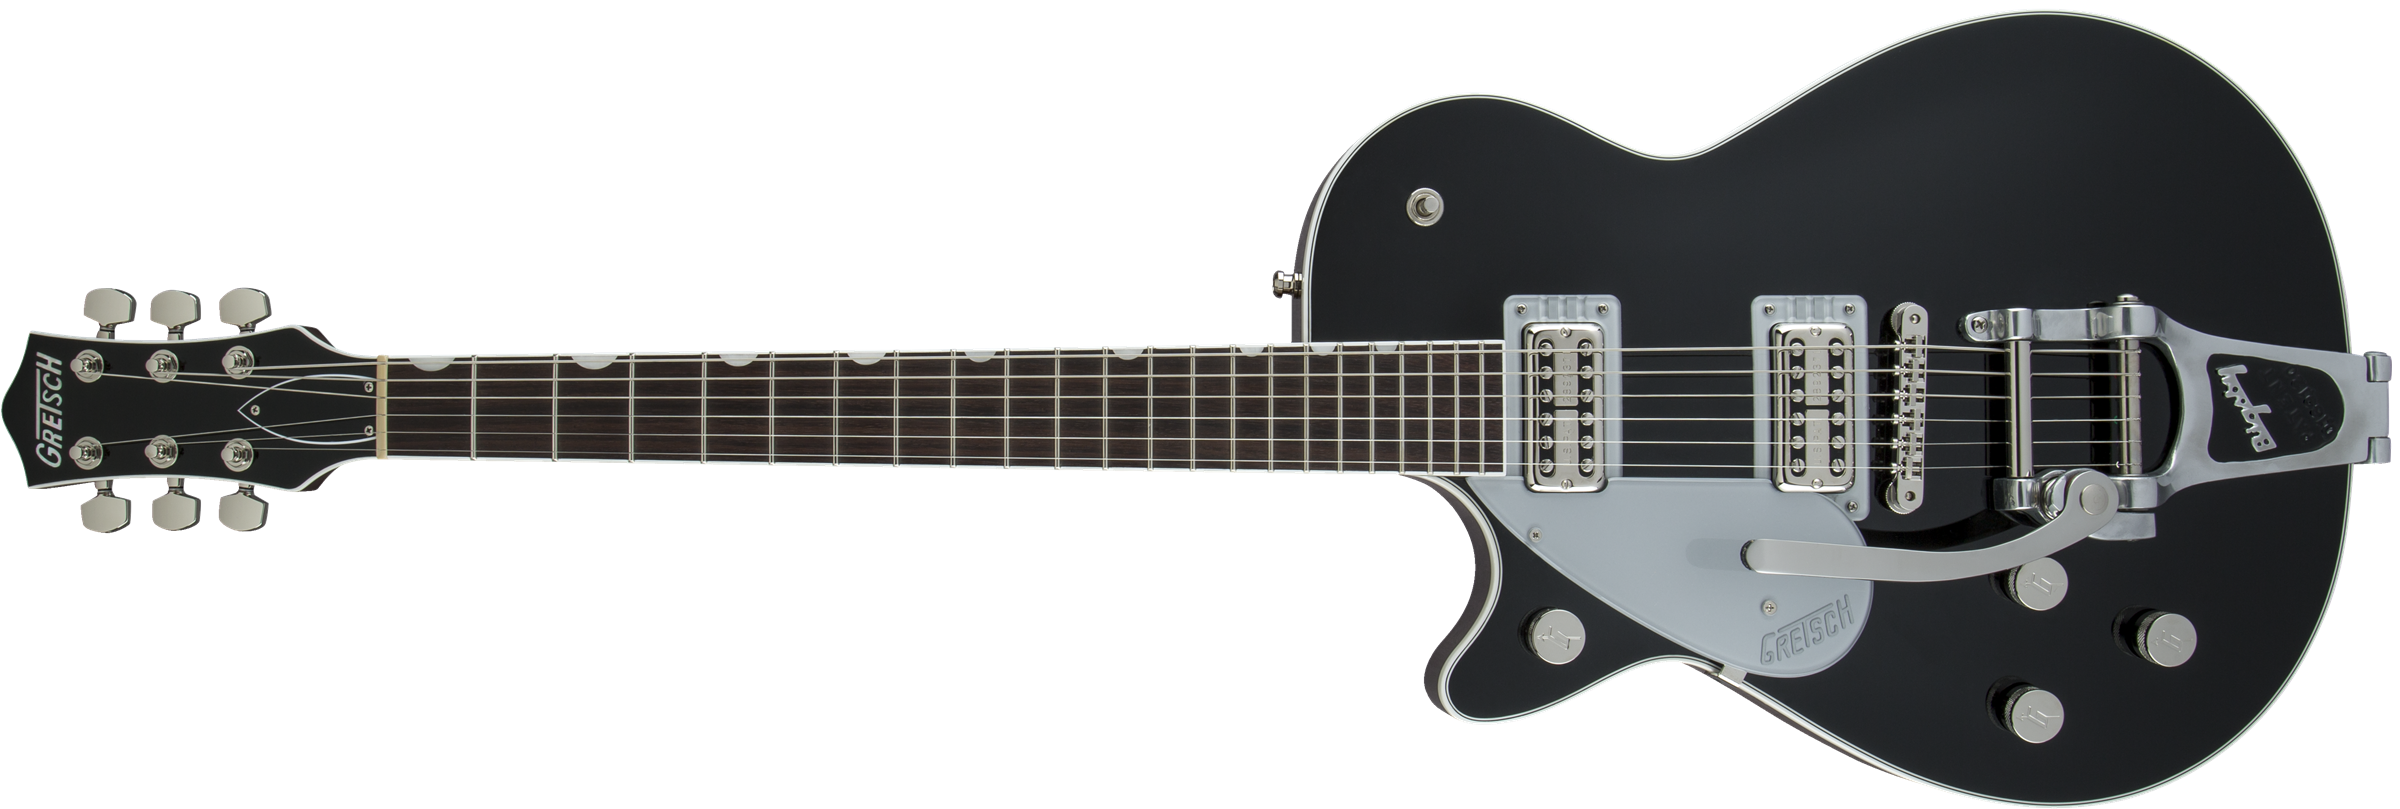 GRETSCH-G6128TLH-Players-Edition-Jet-FT-with-Bigsby-Left-Handed-Rosewood-Fingerboard-Black-sku-571001473